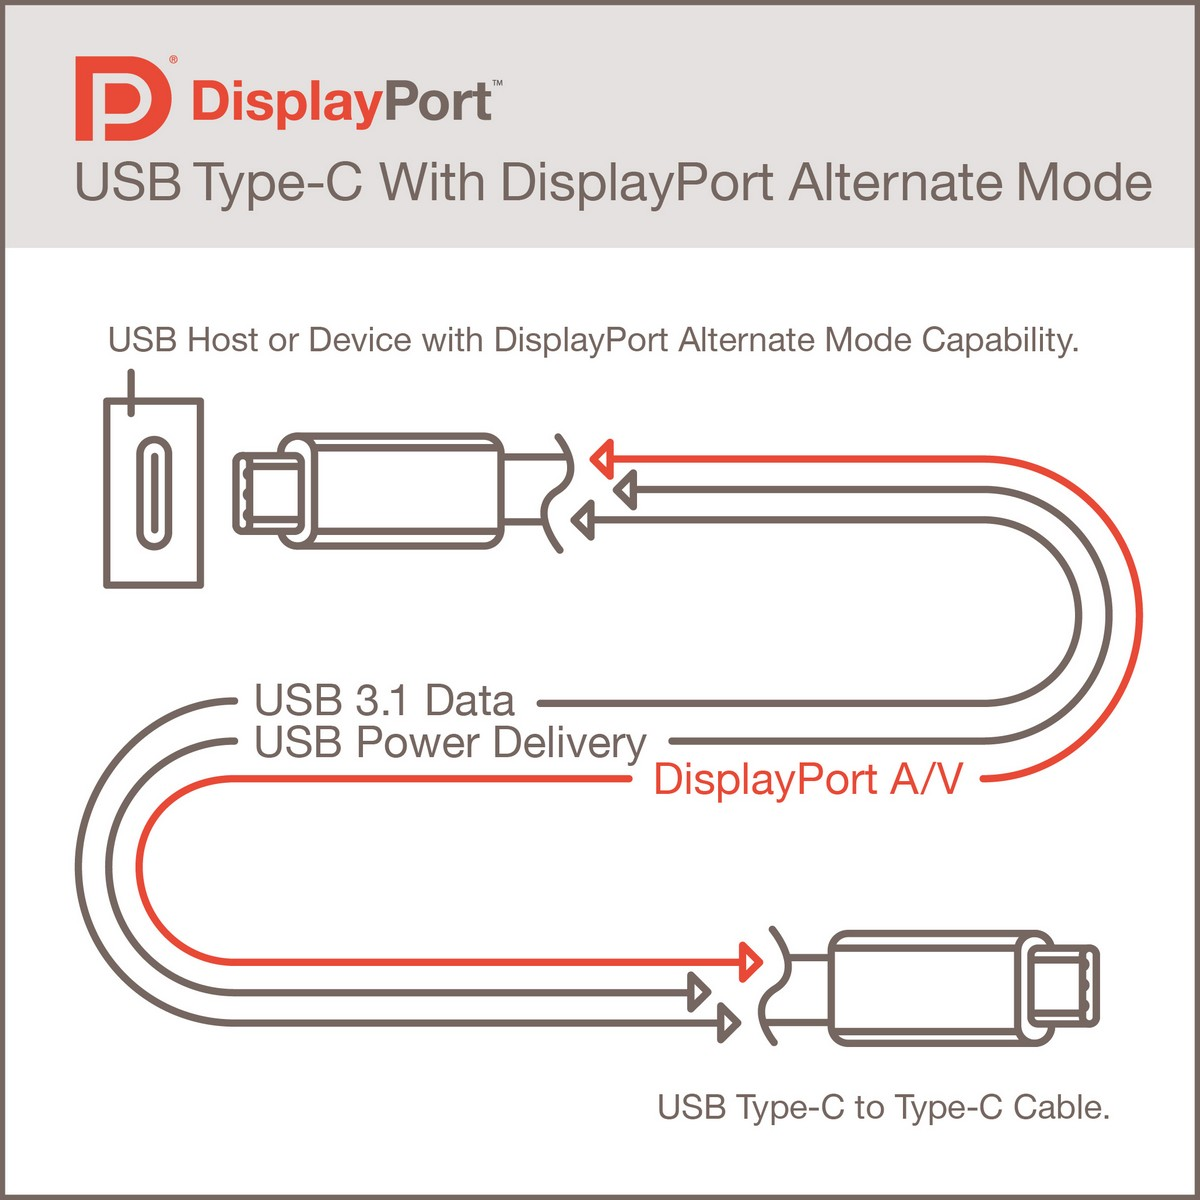 DisplayPort Alternate Mode